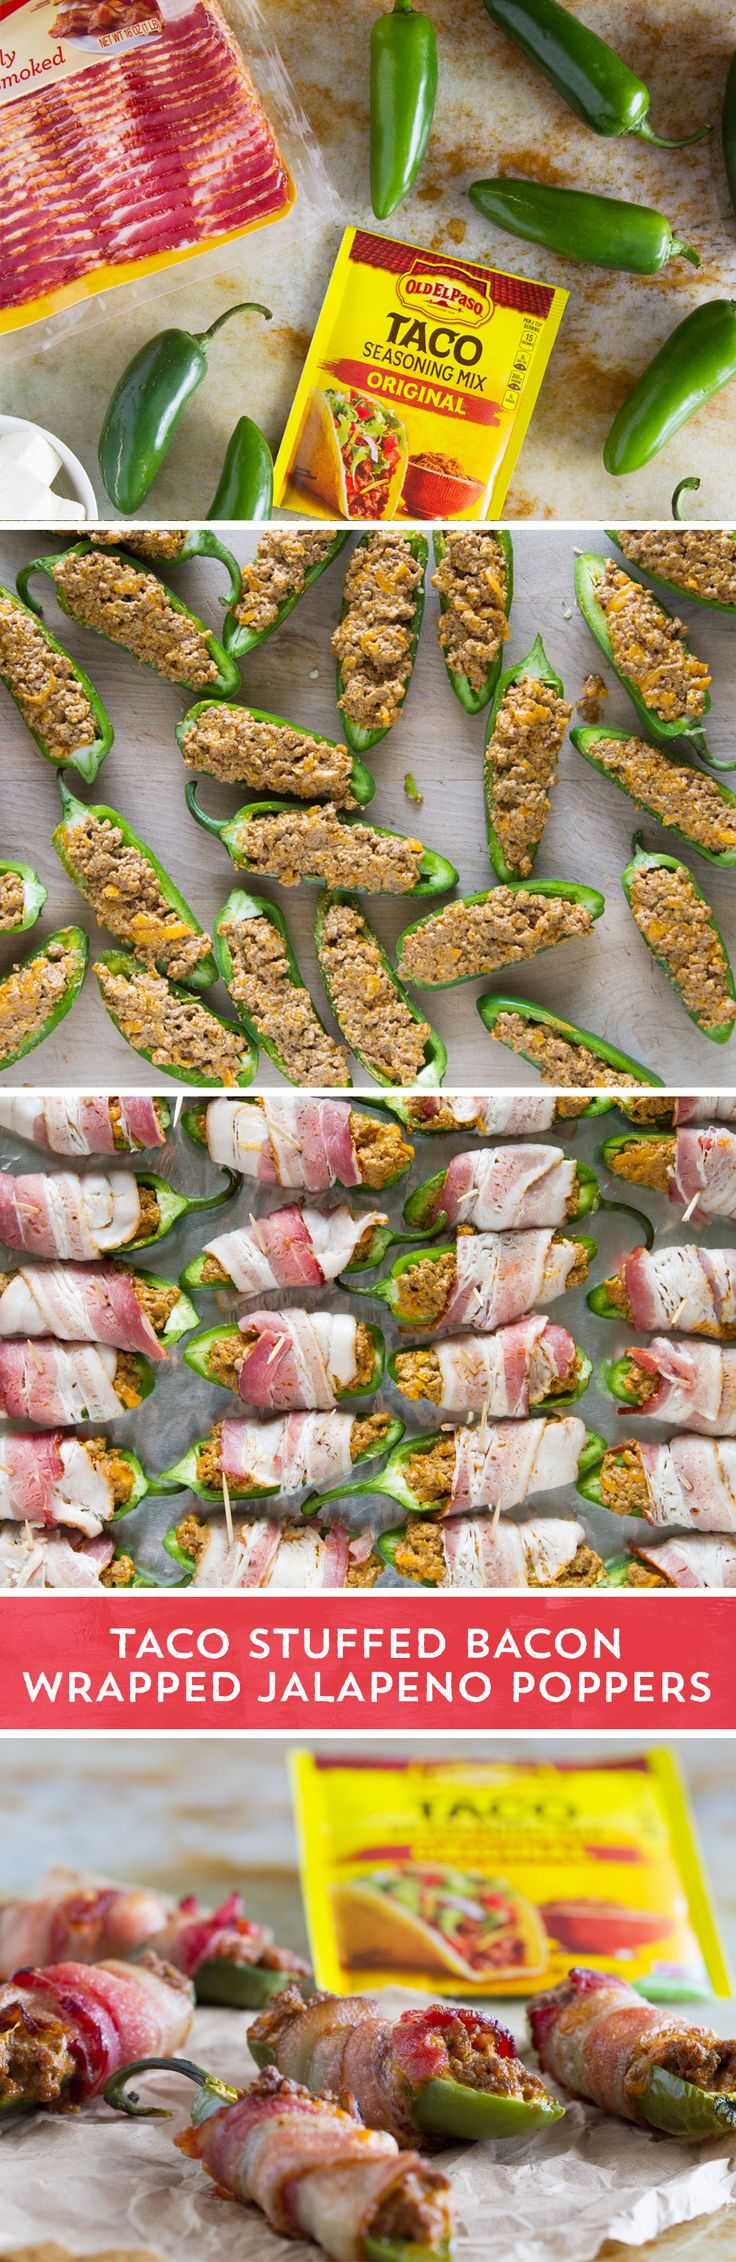 "Jalapeno poppers get ""Tex-Mex-ified"" with these spicy mouthfuls from @tasteandtell. Fresh jalapenos get stuffed with cooked ground beef seasoned with Old El Paso™ Taco Seasoning mixed with softened cr (Mix Veggies Cream Cheeses)"